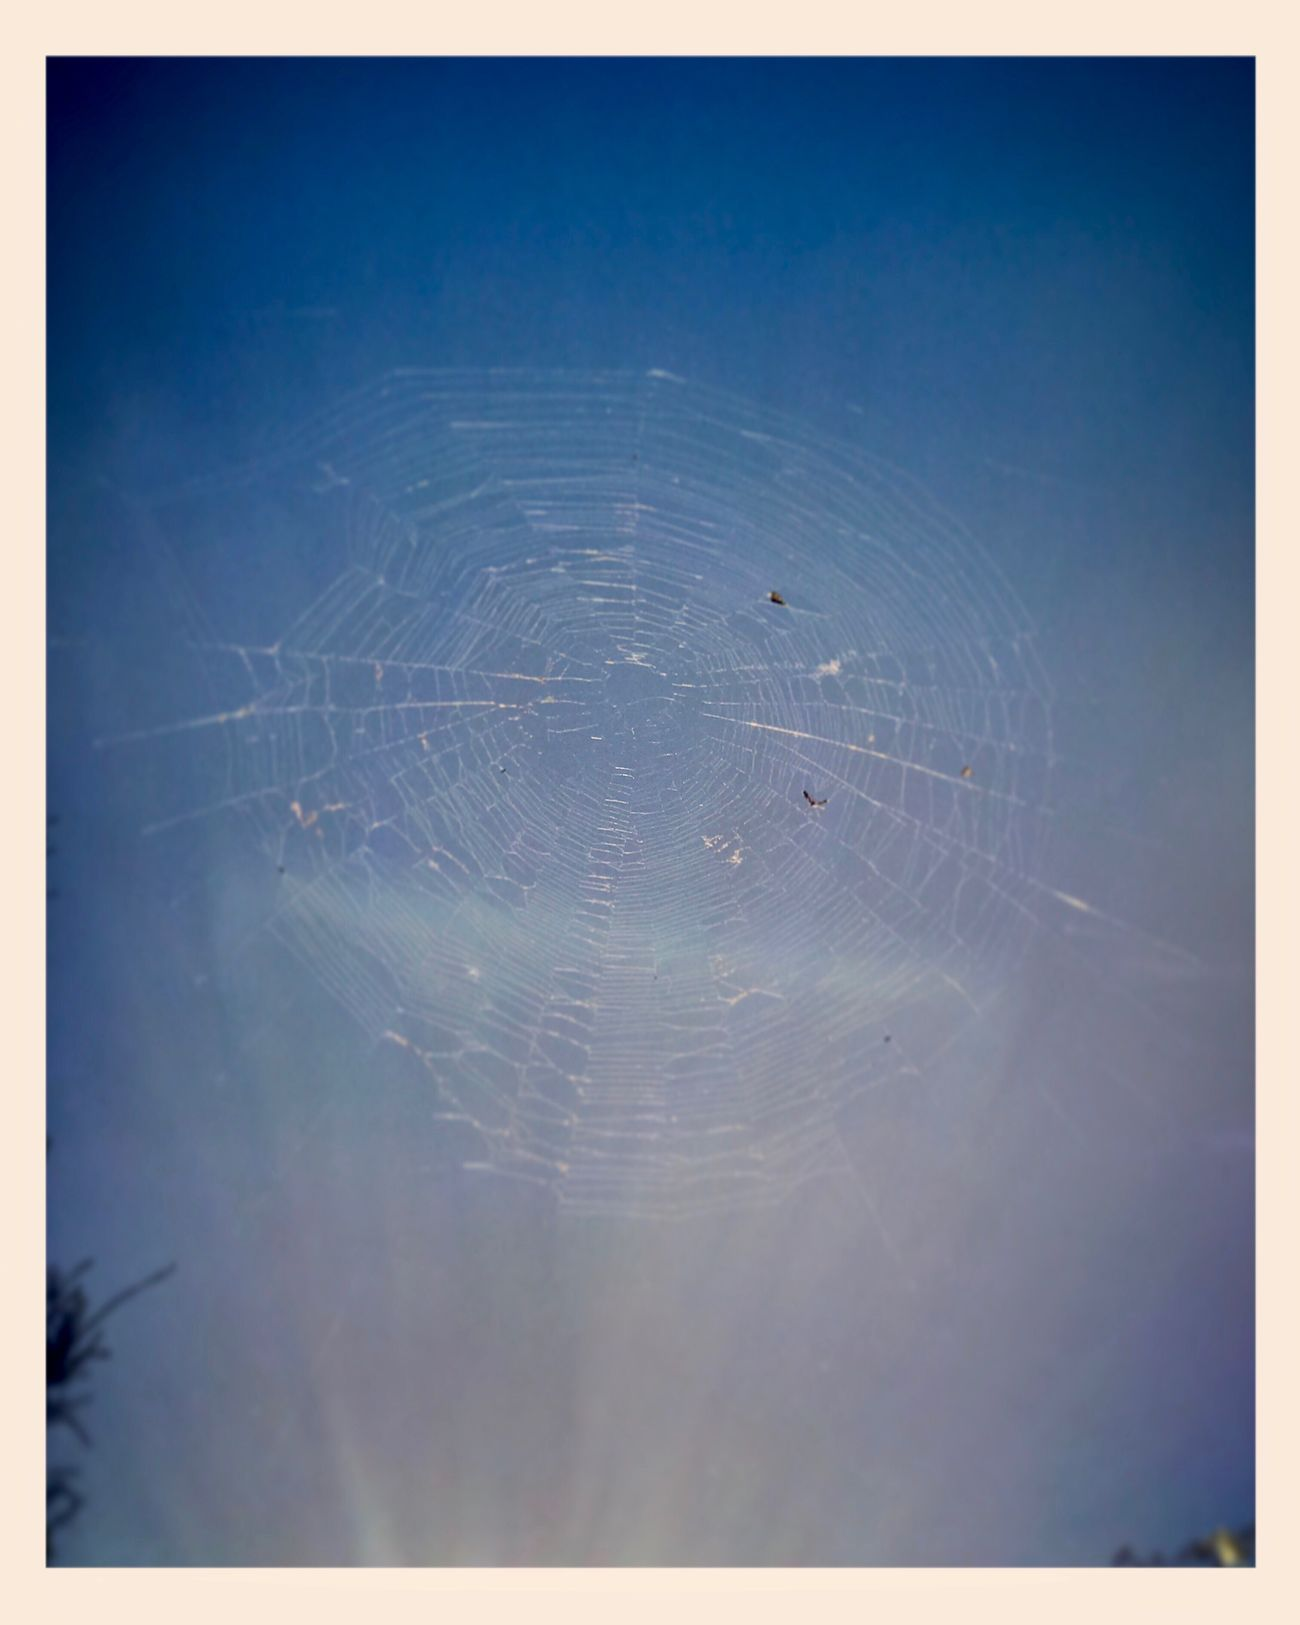 Web in the air 🕷🕸🕷 Webintheair Spiderweb Insects  Spiderworld Nature WhileIwaswalking Suns Glimmer 🕷🕸🕷